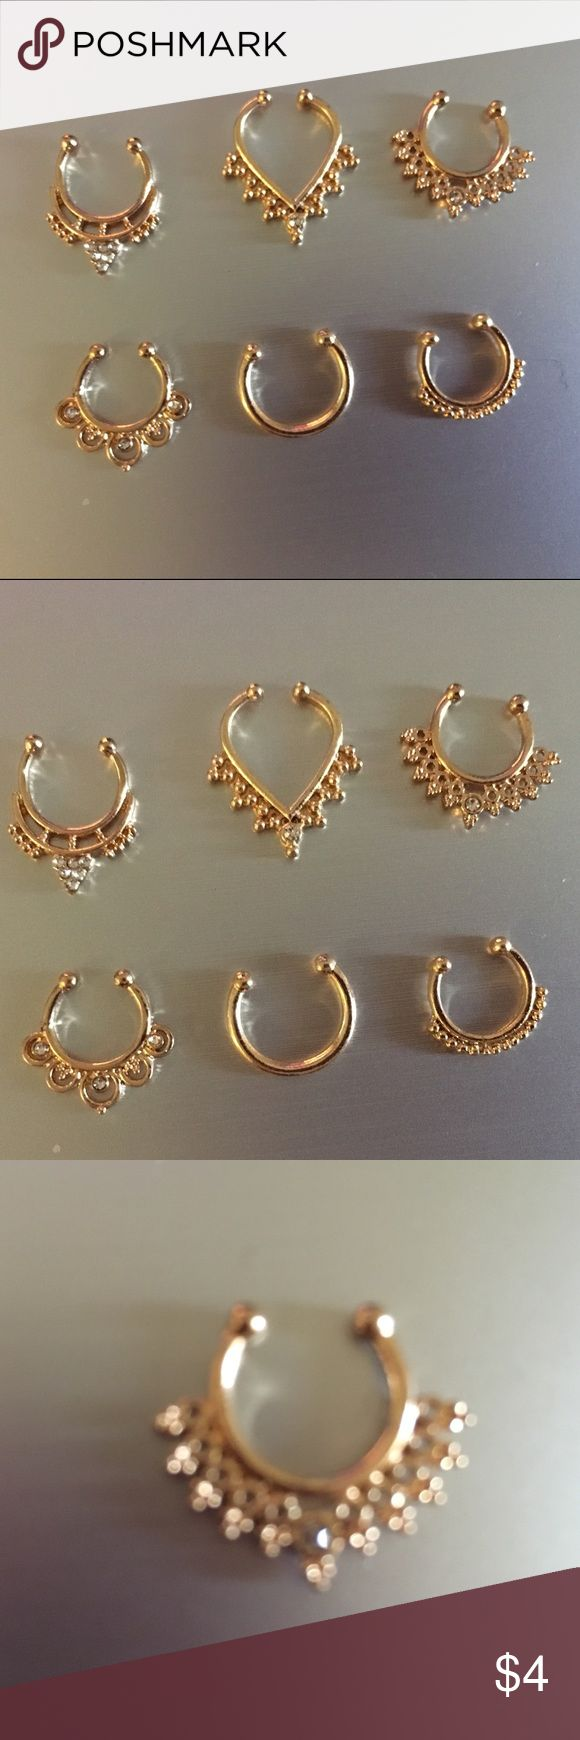 Gold septum piercings (faux) Bohemian style gold coated nose rings for the septum. Easily bendable material for different sizes and structured noses. Different designs. Sequins. Forever 21 Other